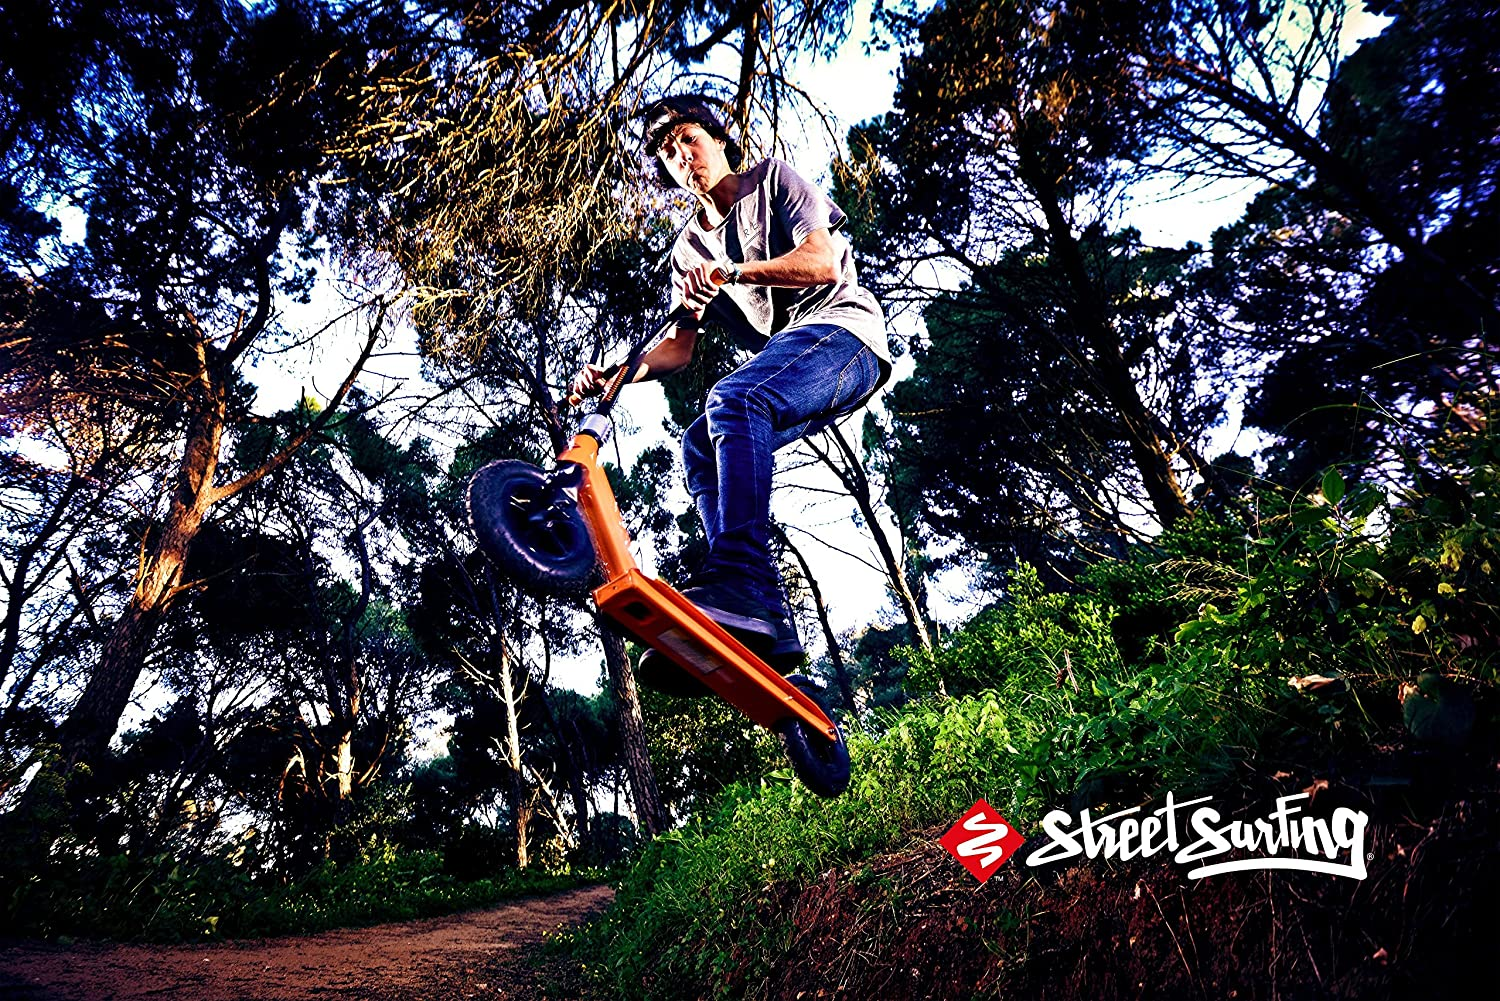 Streetsurfing Scooter Street Surfing STREET Rush Dirt ...